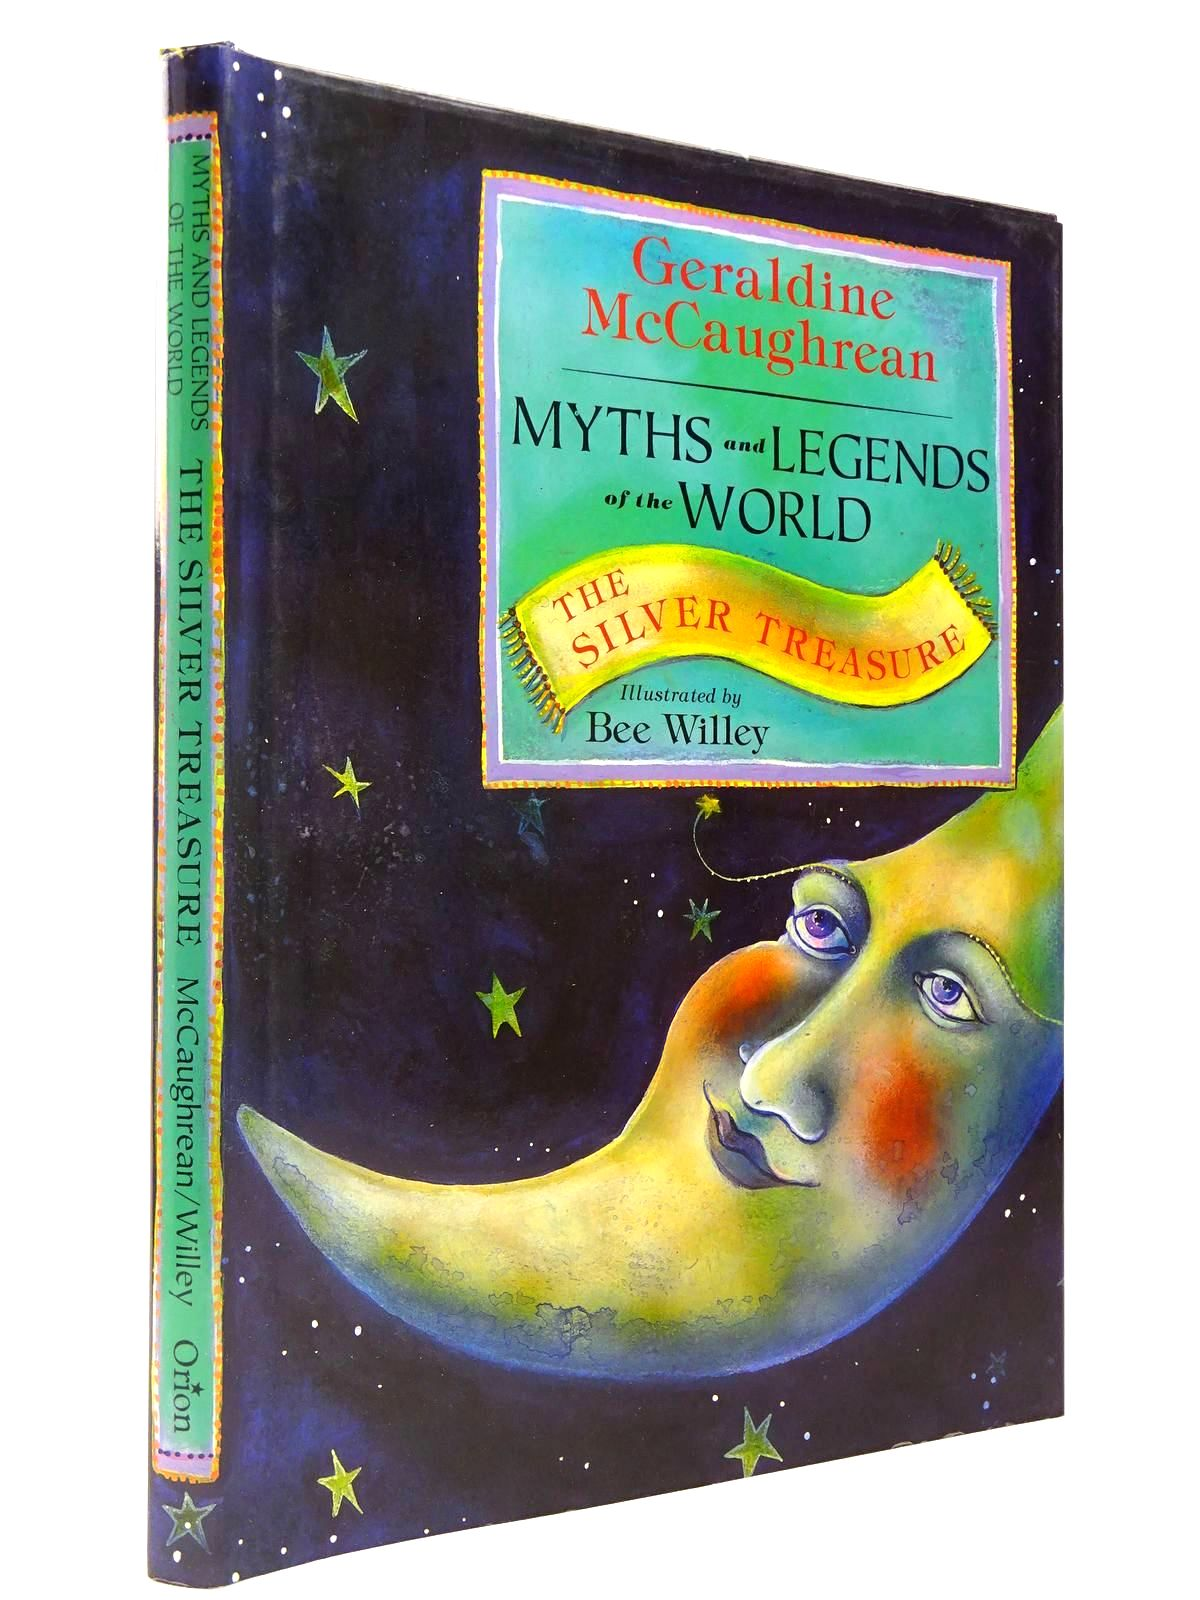 Photo of THE SILVER TREASURE written by McCaughrean, Geraldine illustrated by Willey, Bee published by Orion Children's Books (STOCK CODE: 2129870)  for sale by Stella & Rose's Books